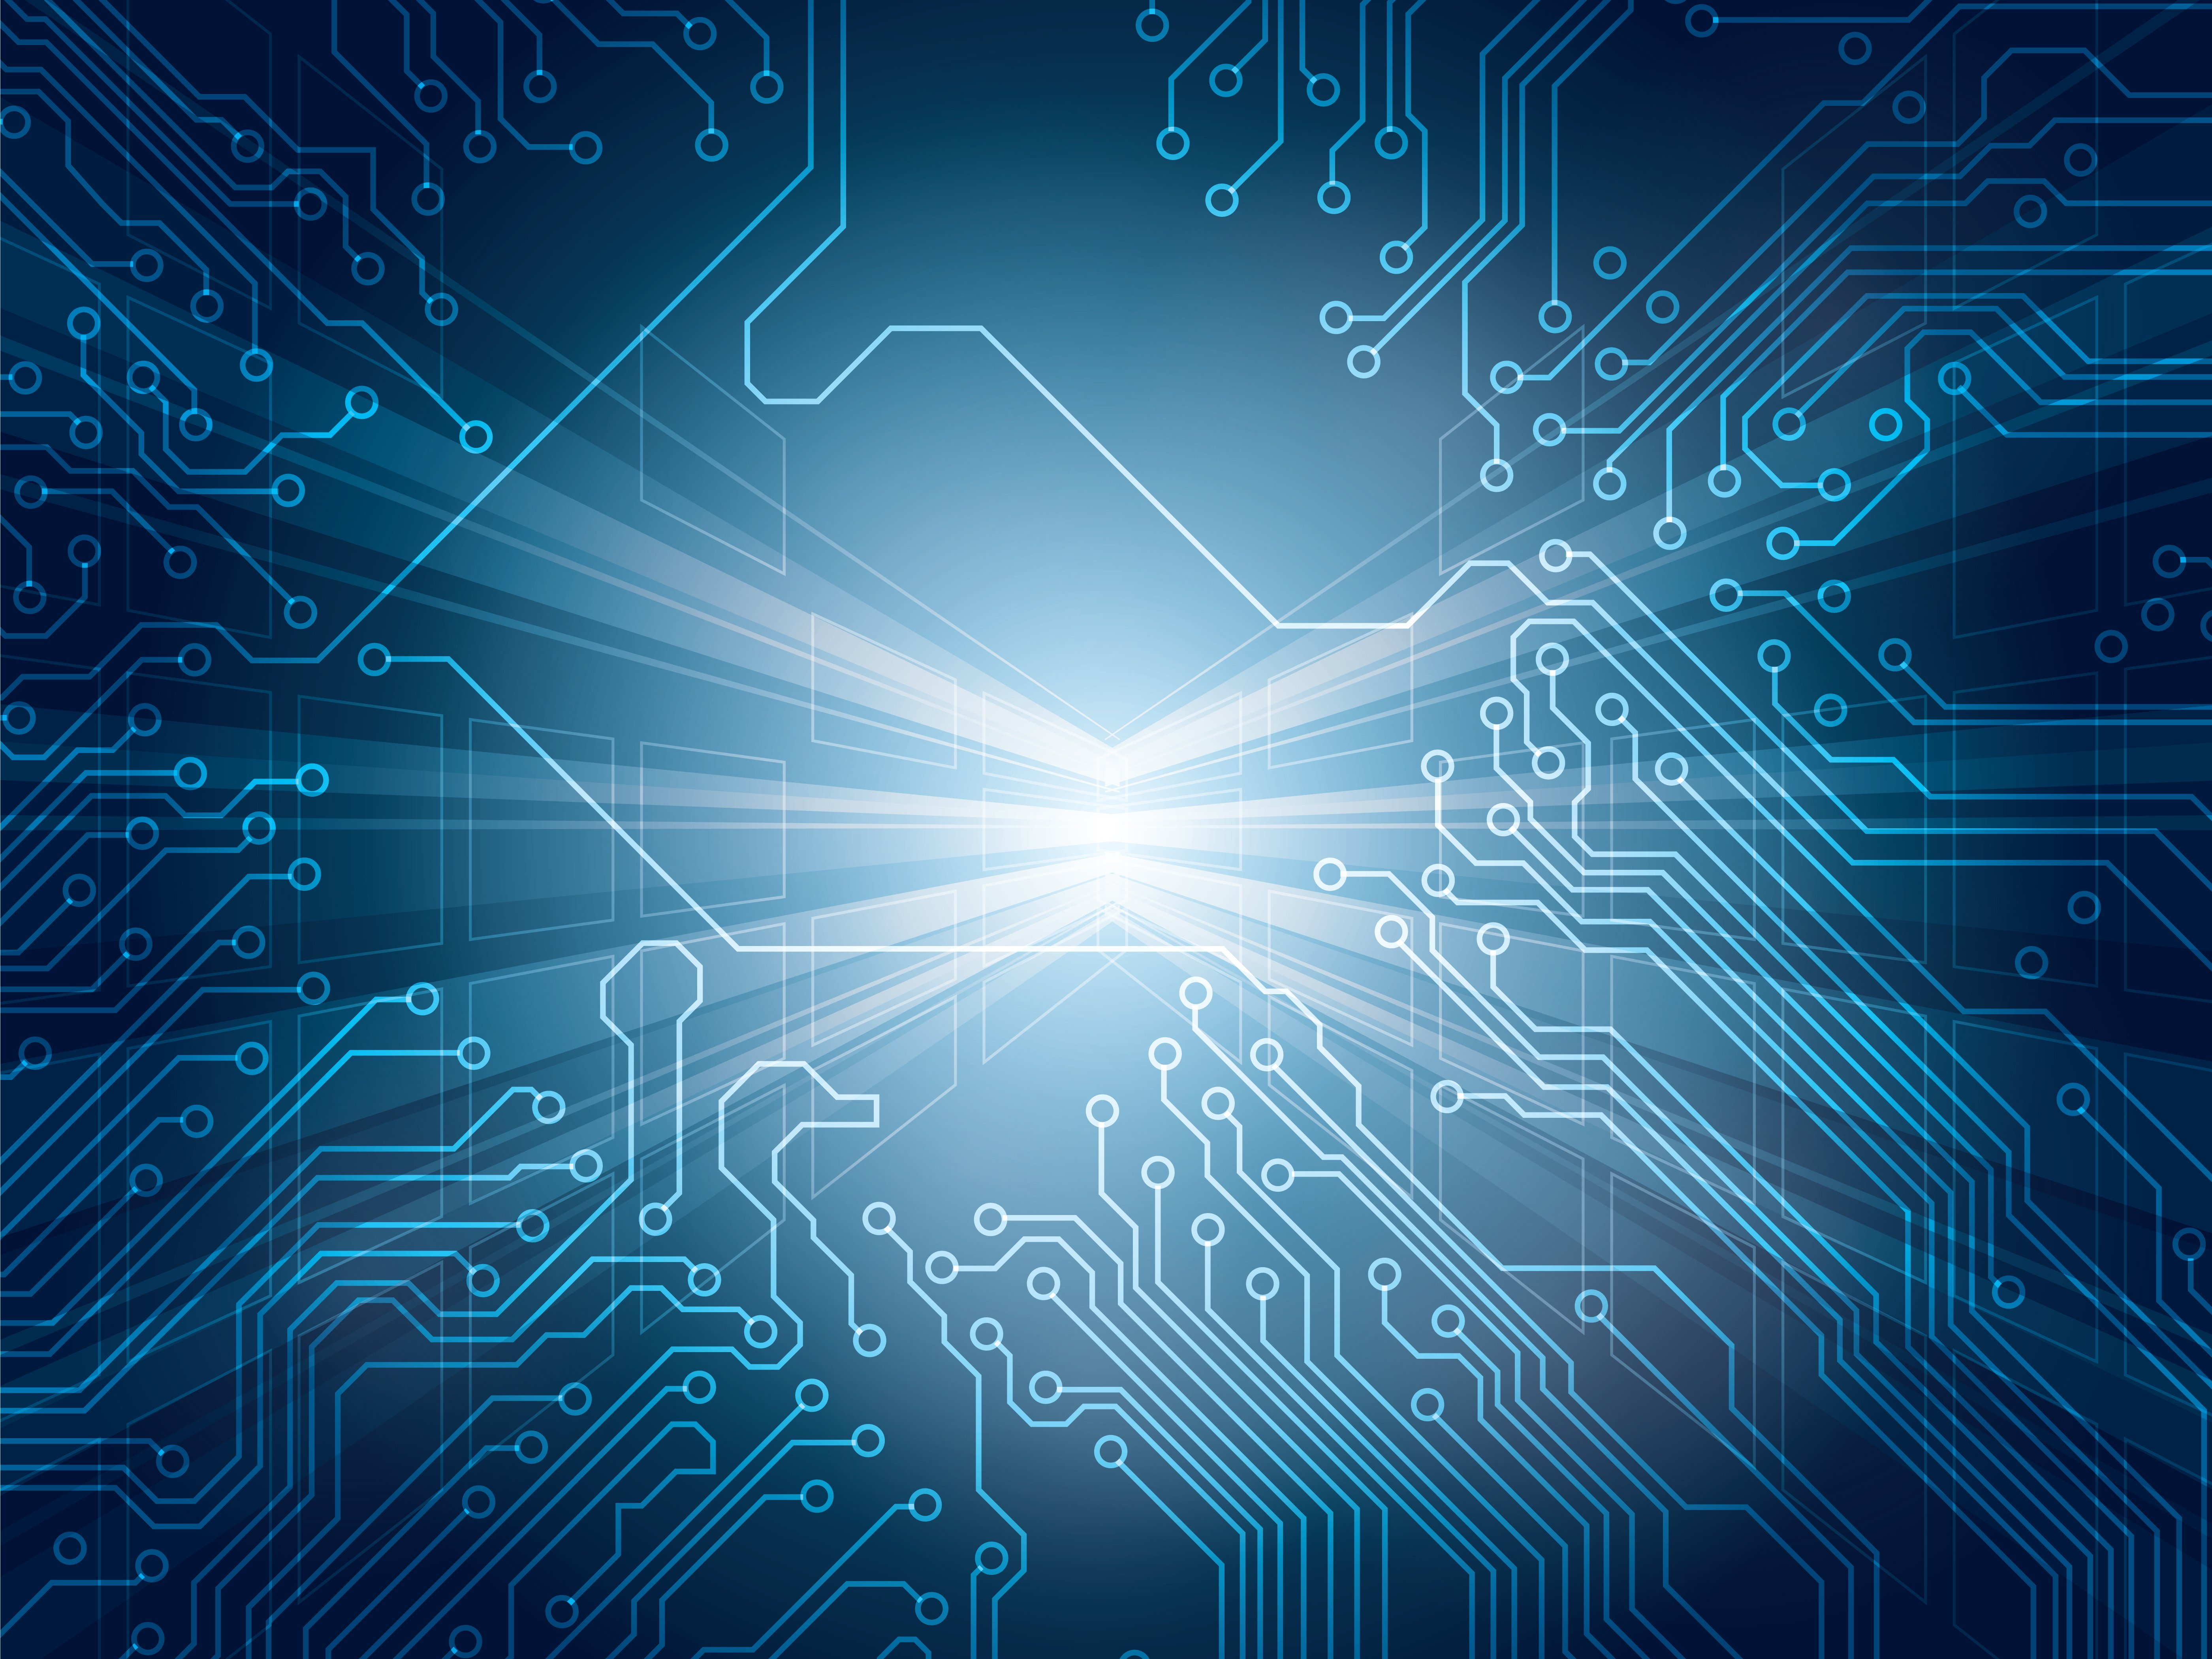 Psychedelic Circuit Board Guide And Troubleshooting Of Wiring Wallpaper Digital Art Wallpapers 13785 Electronics Machine Technology Electronic Computer Graphic Simple